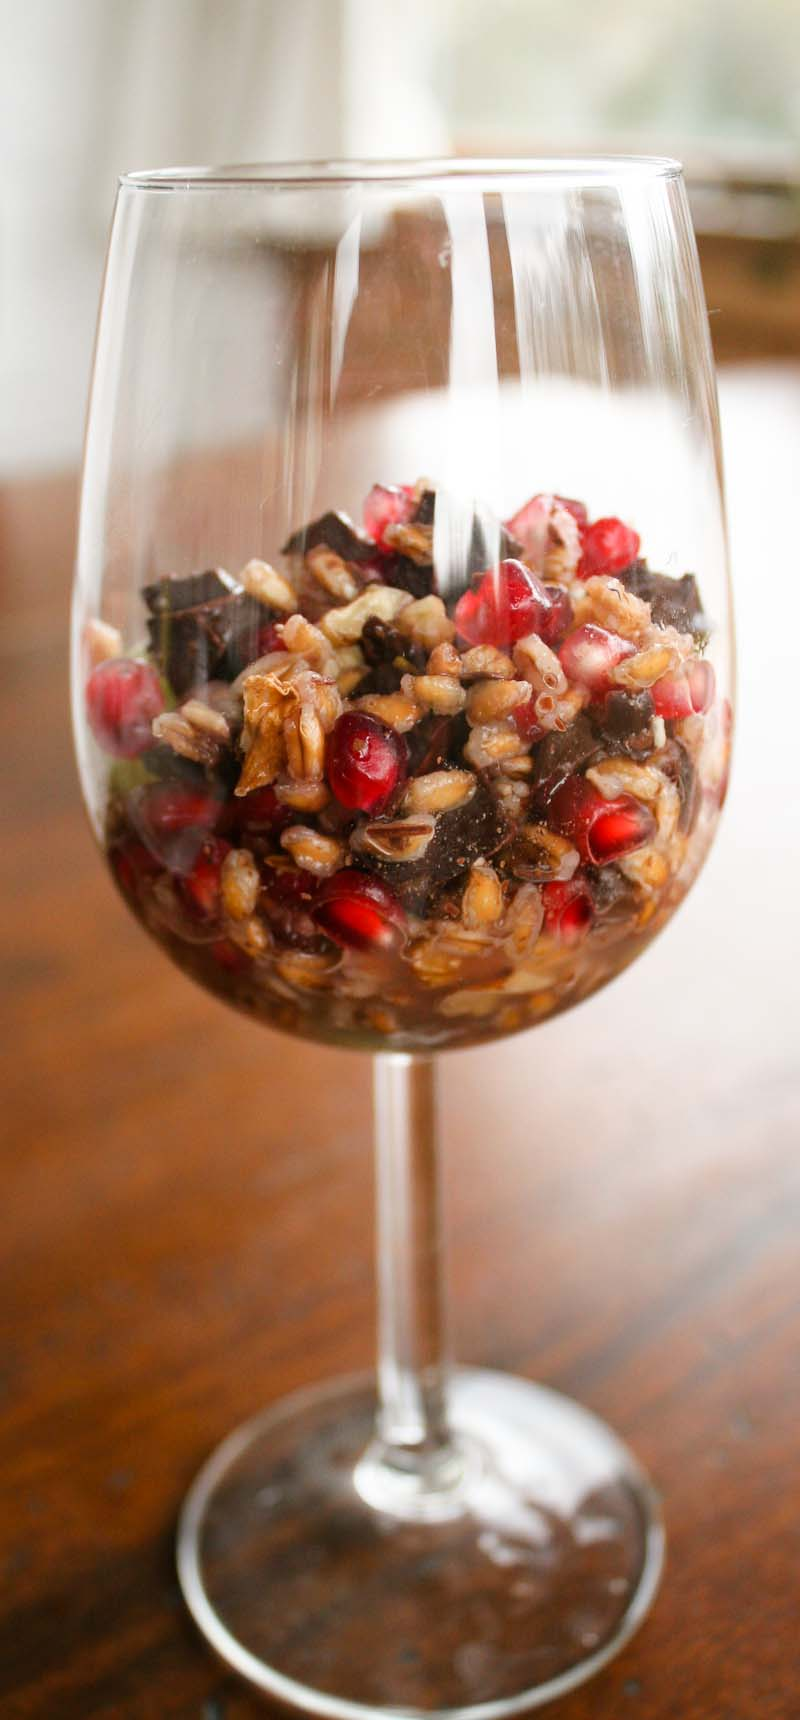 Grano dolce - A dessert of sweet wheat, chocolate, grapes and pomegranate